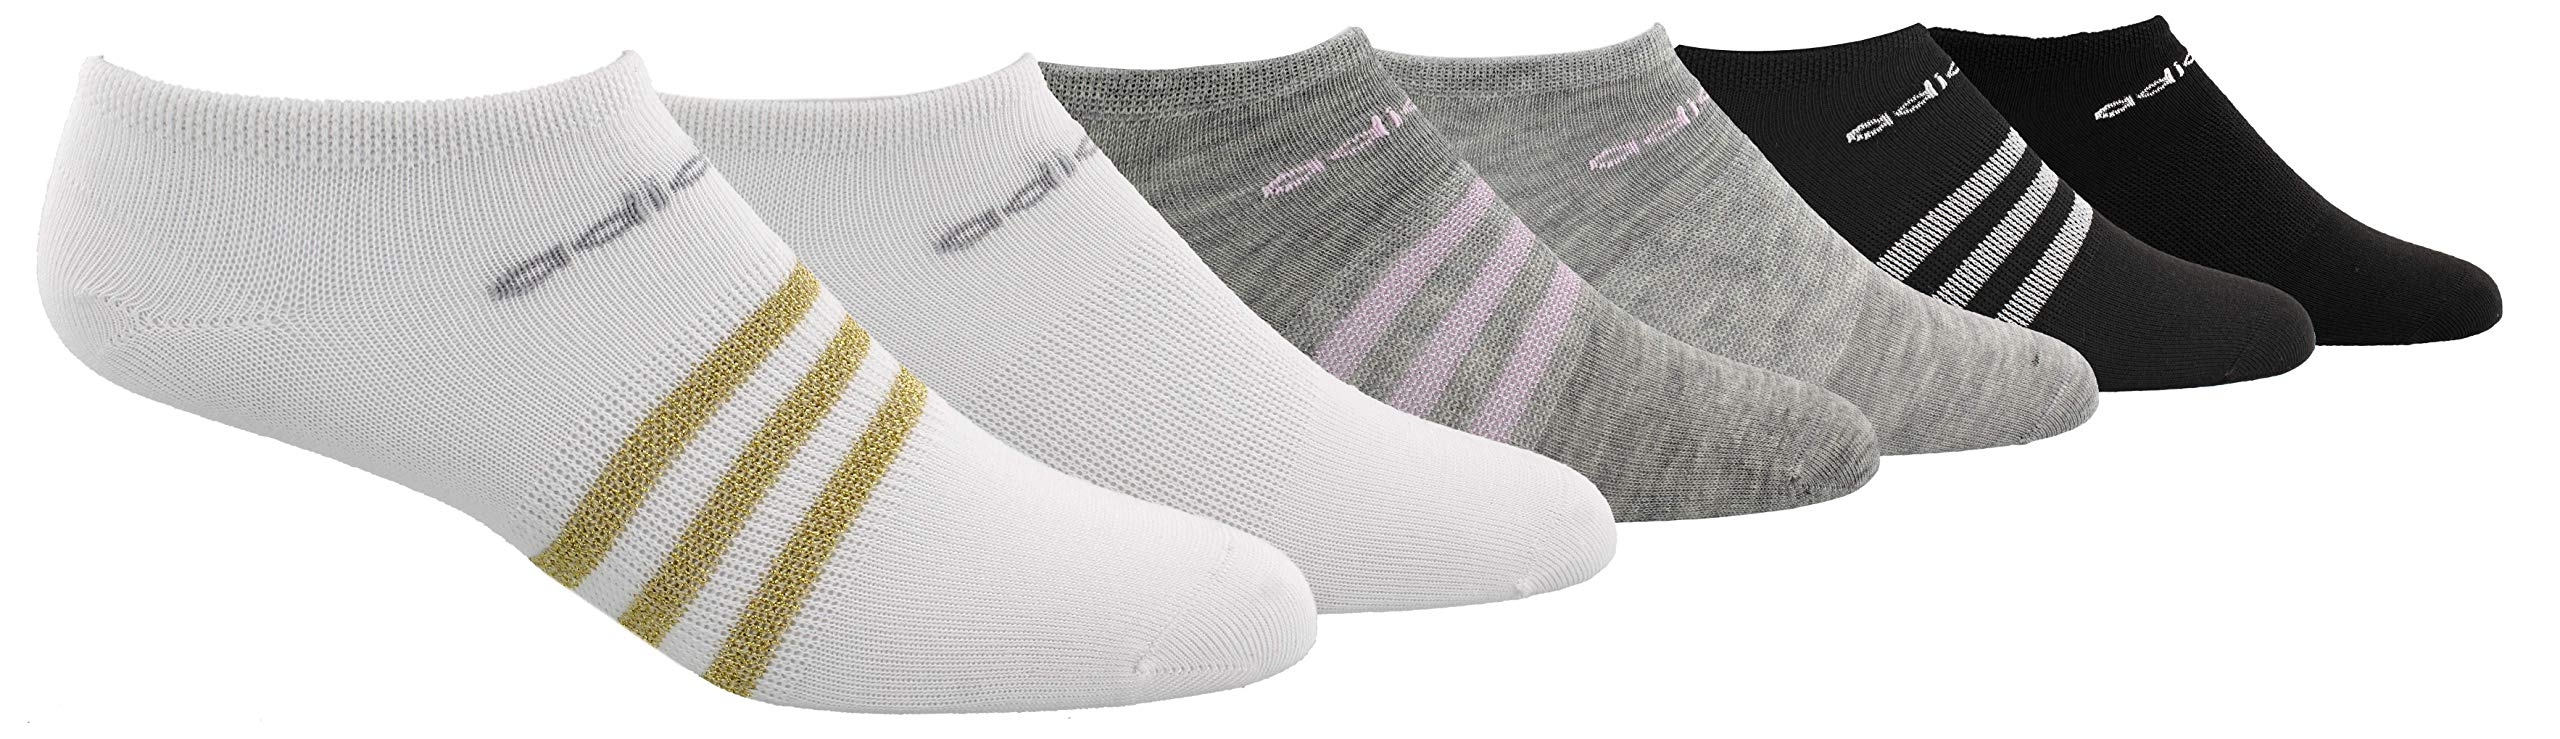 adidas Youth Kids-Girl's Superlite No Show Socks (6 Pair), White/Gold Lurex/Clear Onix Light Heather Grey/Aer, Small, (Shoe Size 9C-1Y) by adidas